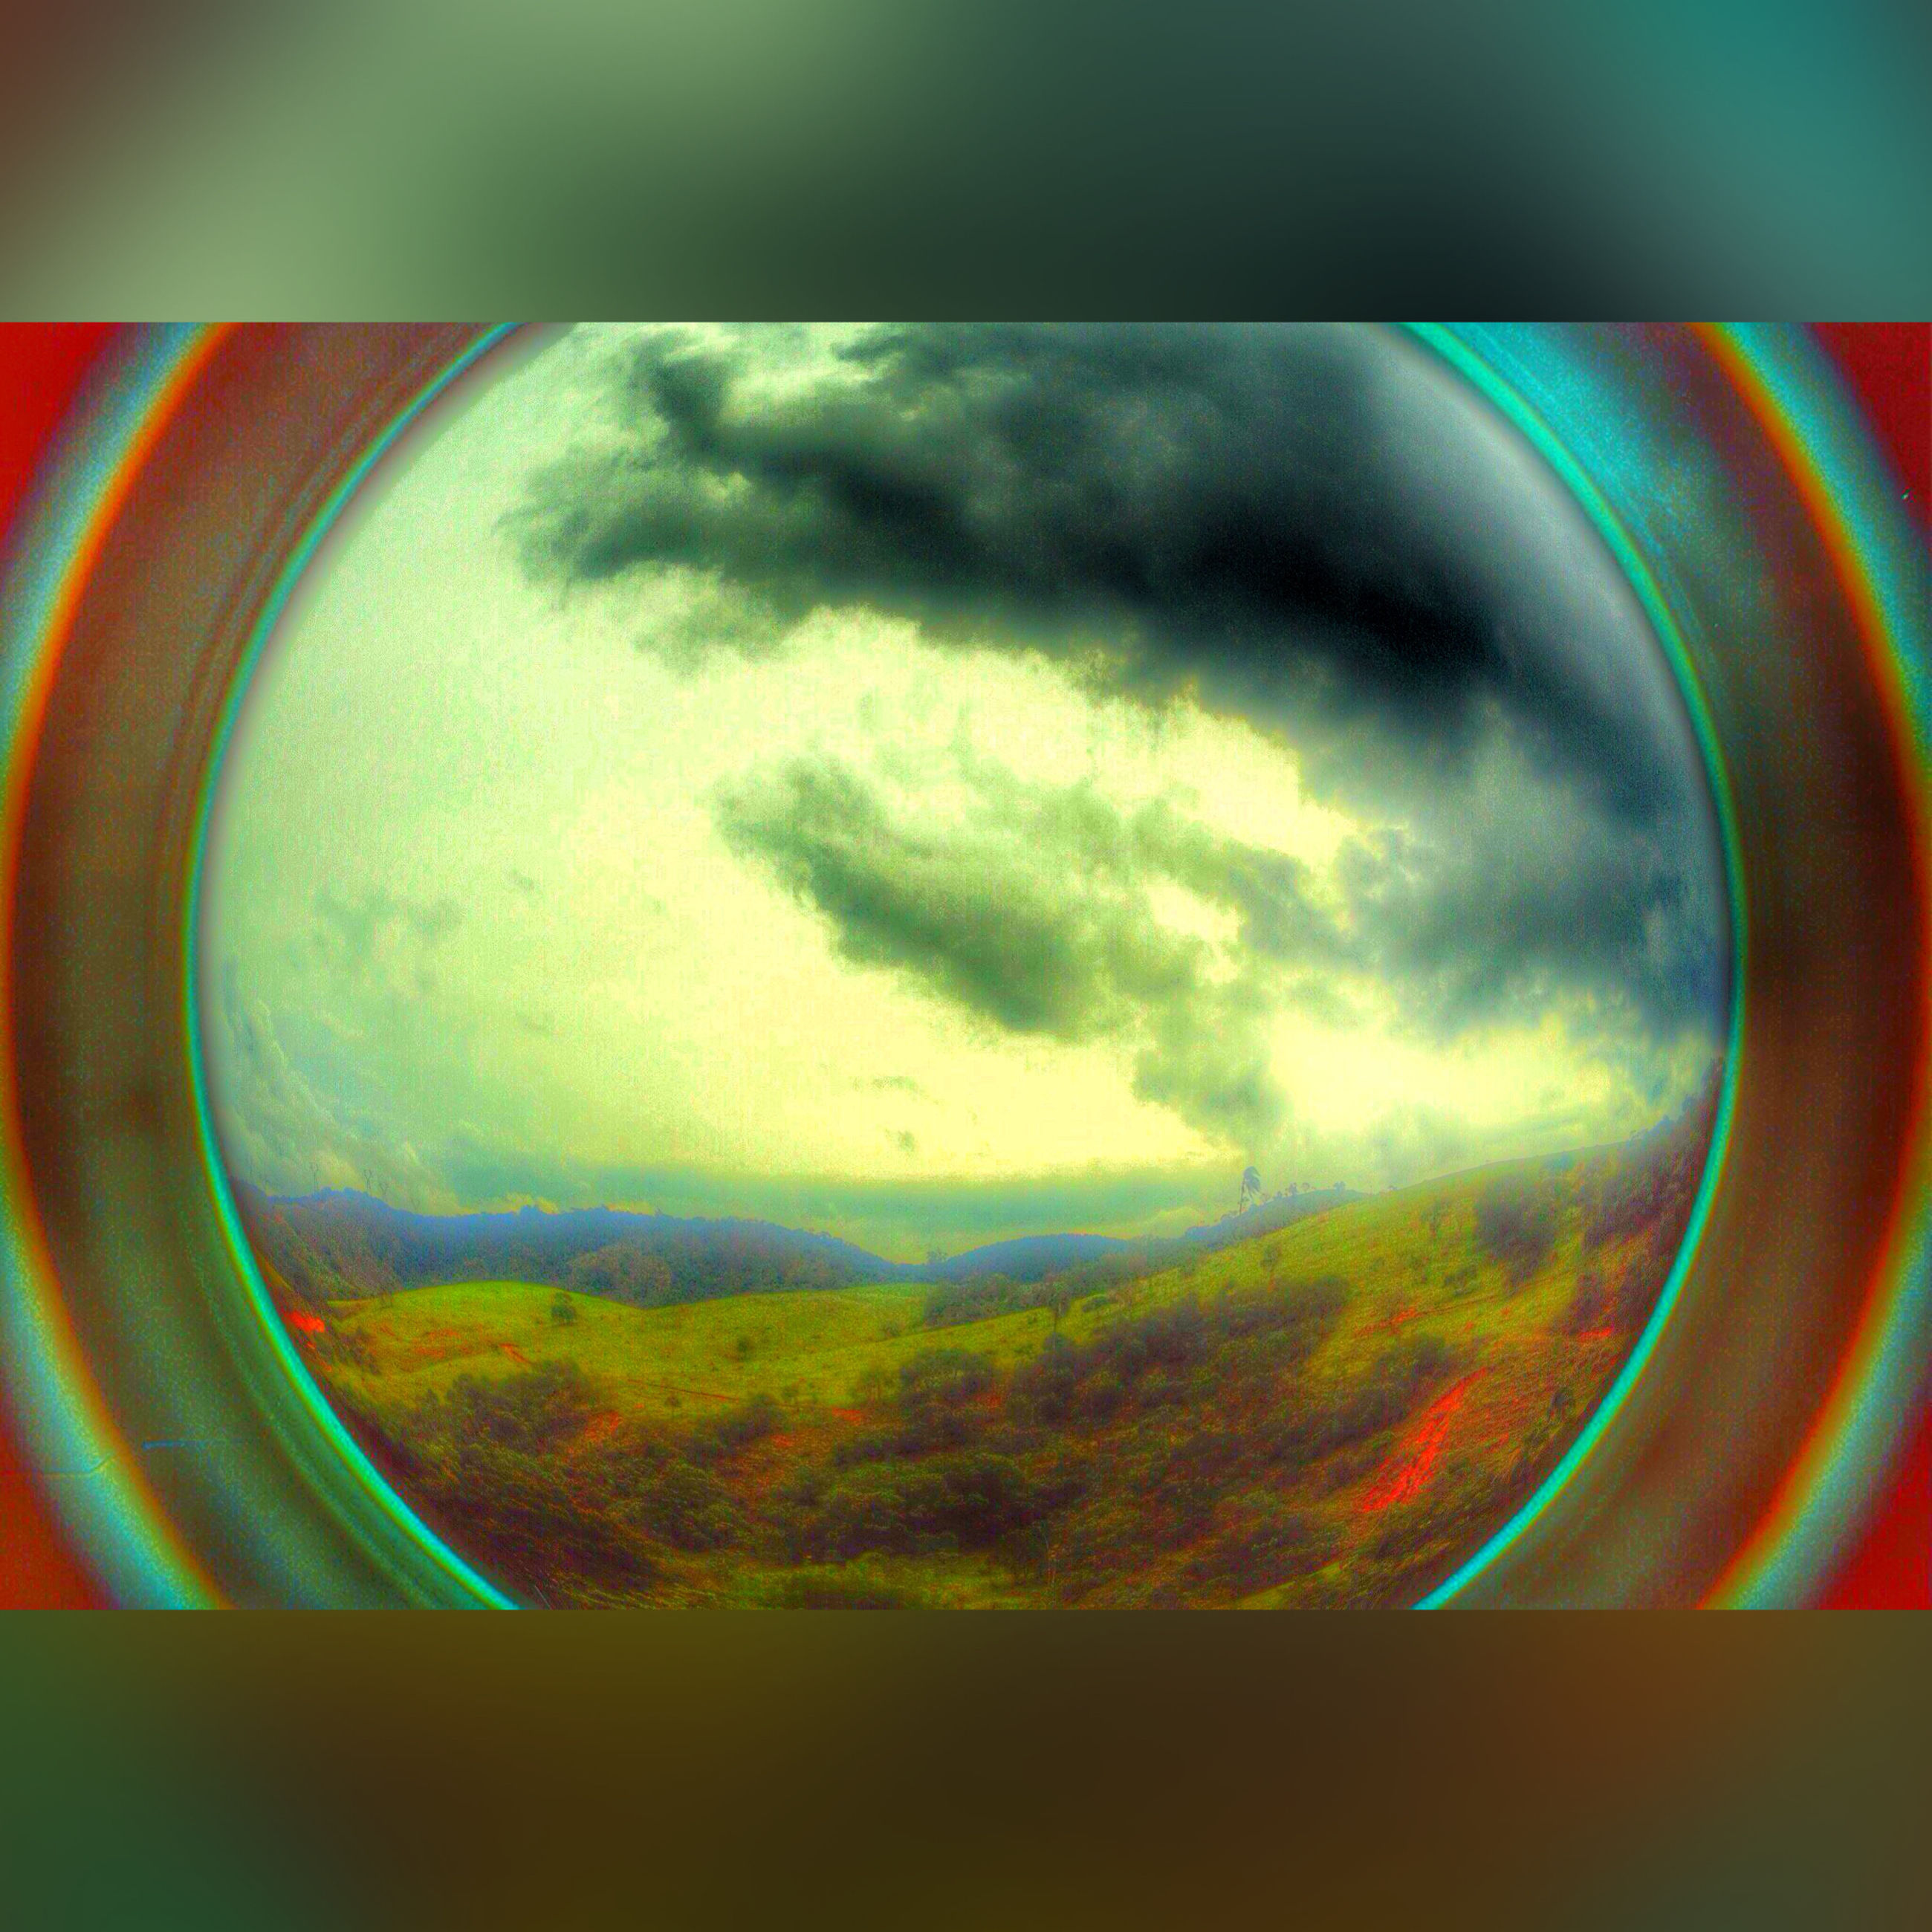 transparent, glass - material, circle, sky, indoors, close-up, geometric shape, window, sphere, blue, reflection, multi colored, no people, round, shape, nature, cloud - sky, glass, rainbow, circular